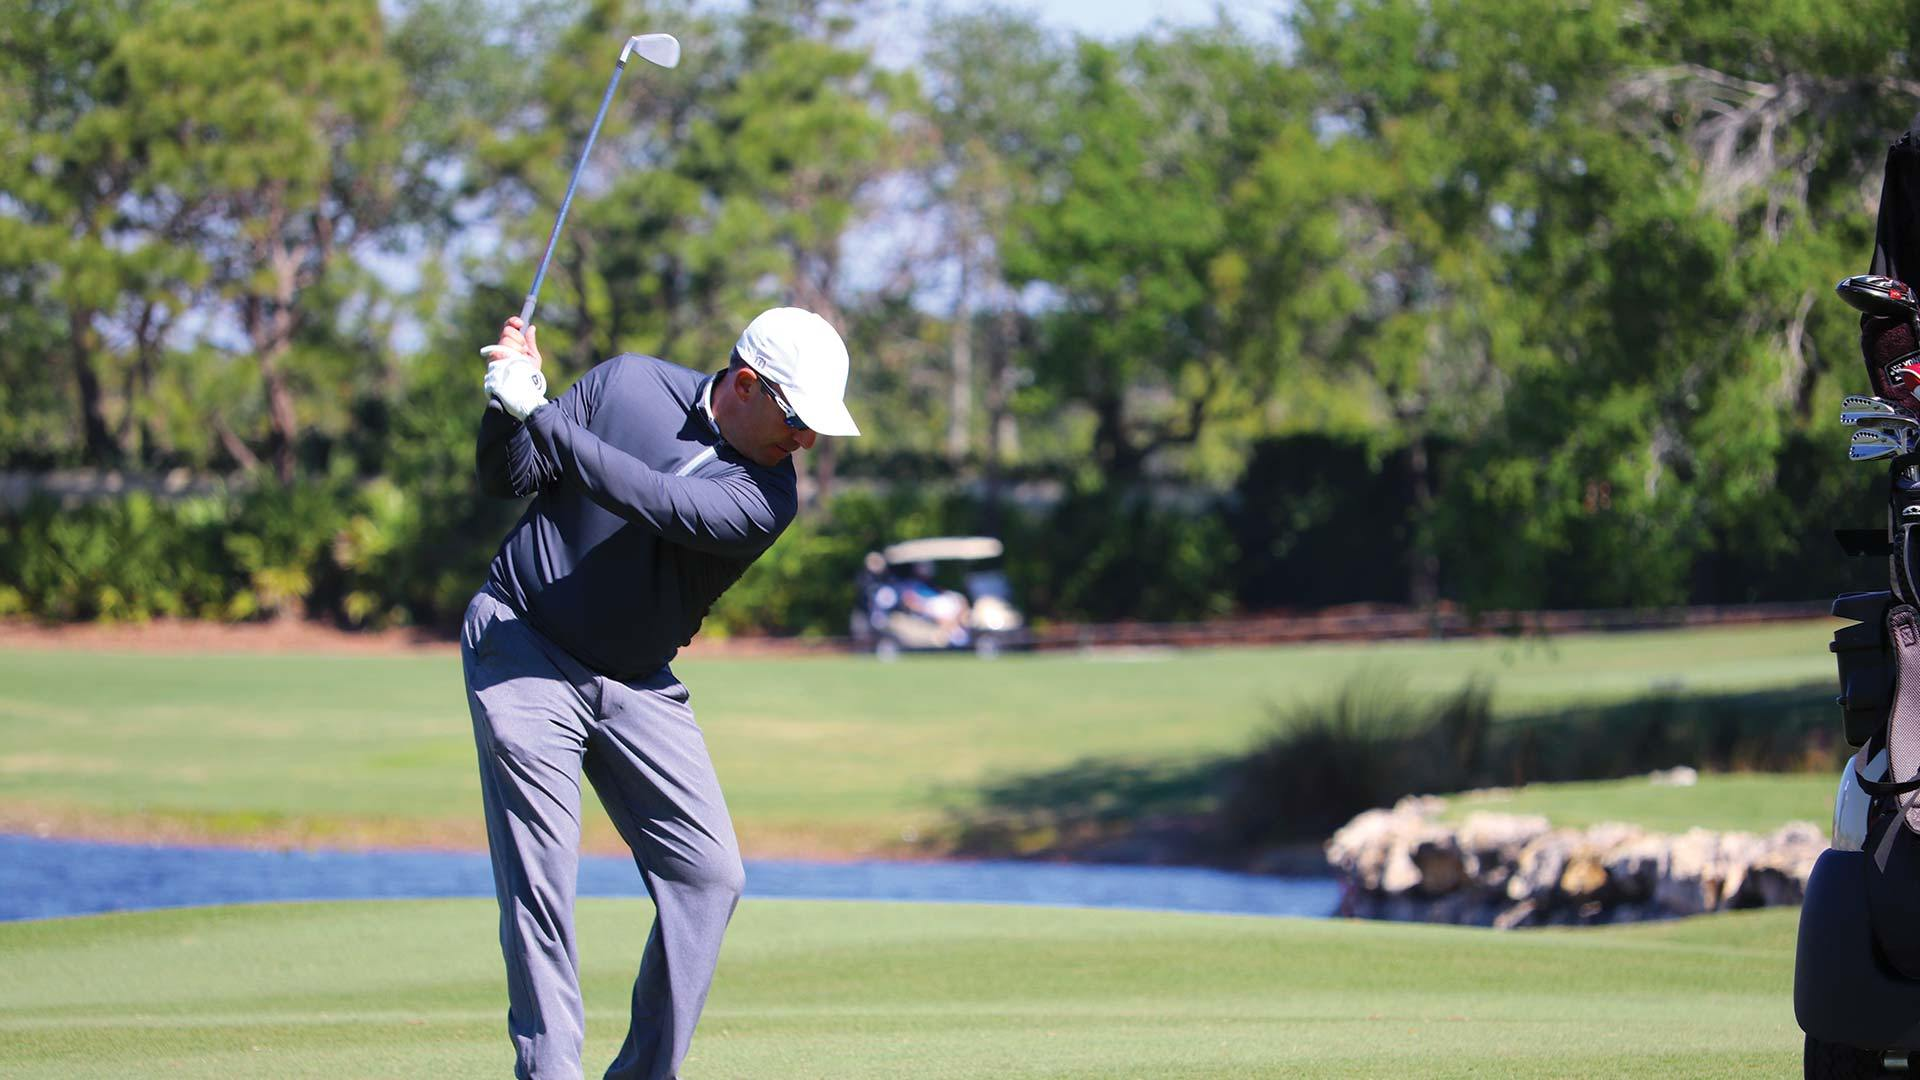 mizner-country-club-delray-beach-golf-images-18